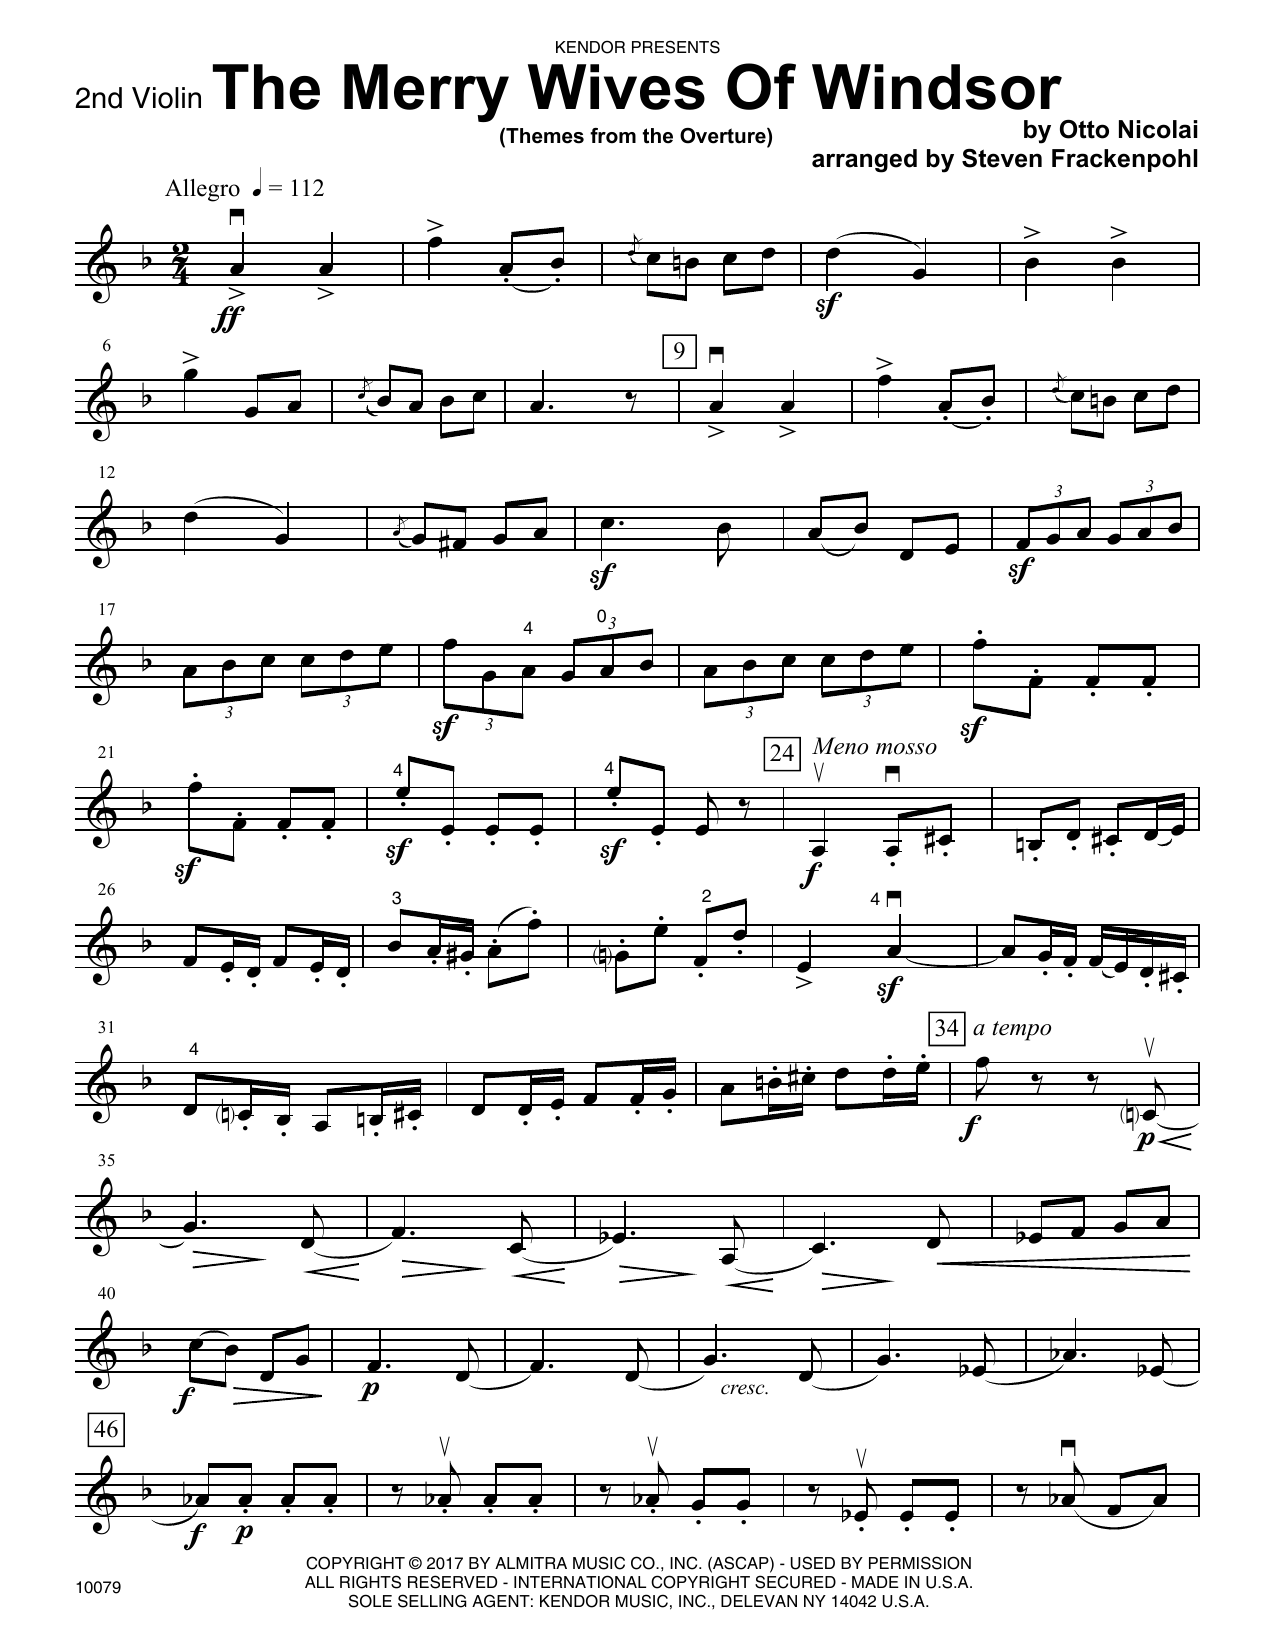 Steven Frackenpohl The Merry Wives Of Windsor (Themes From The Overture) - 2nd Violin sheet music notes printable PDF score